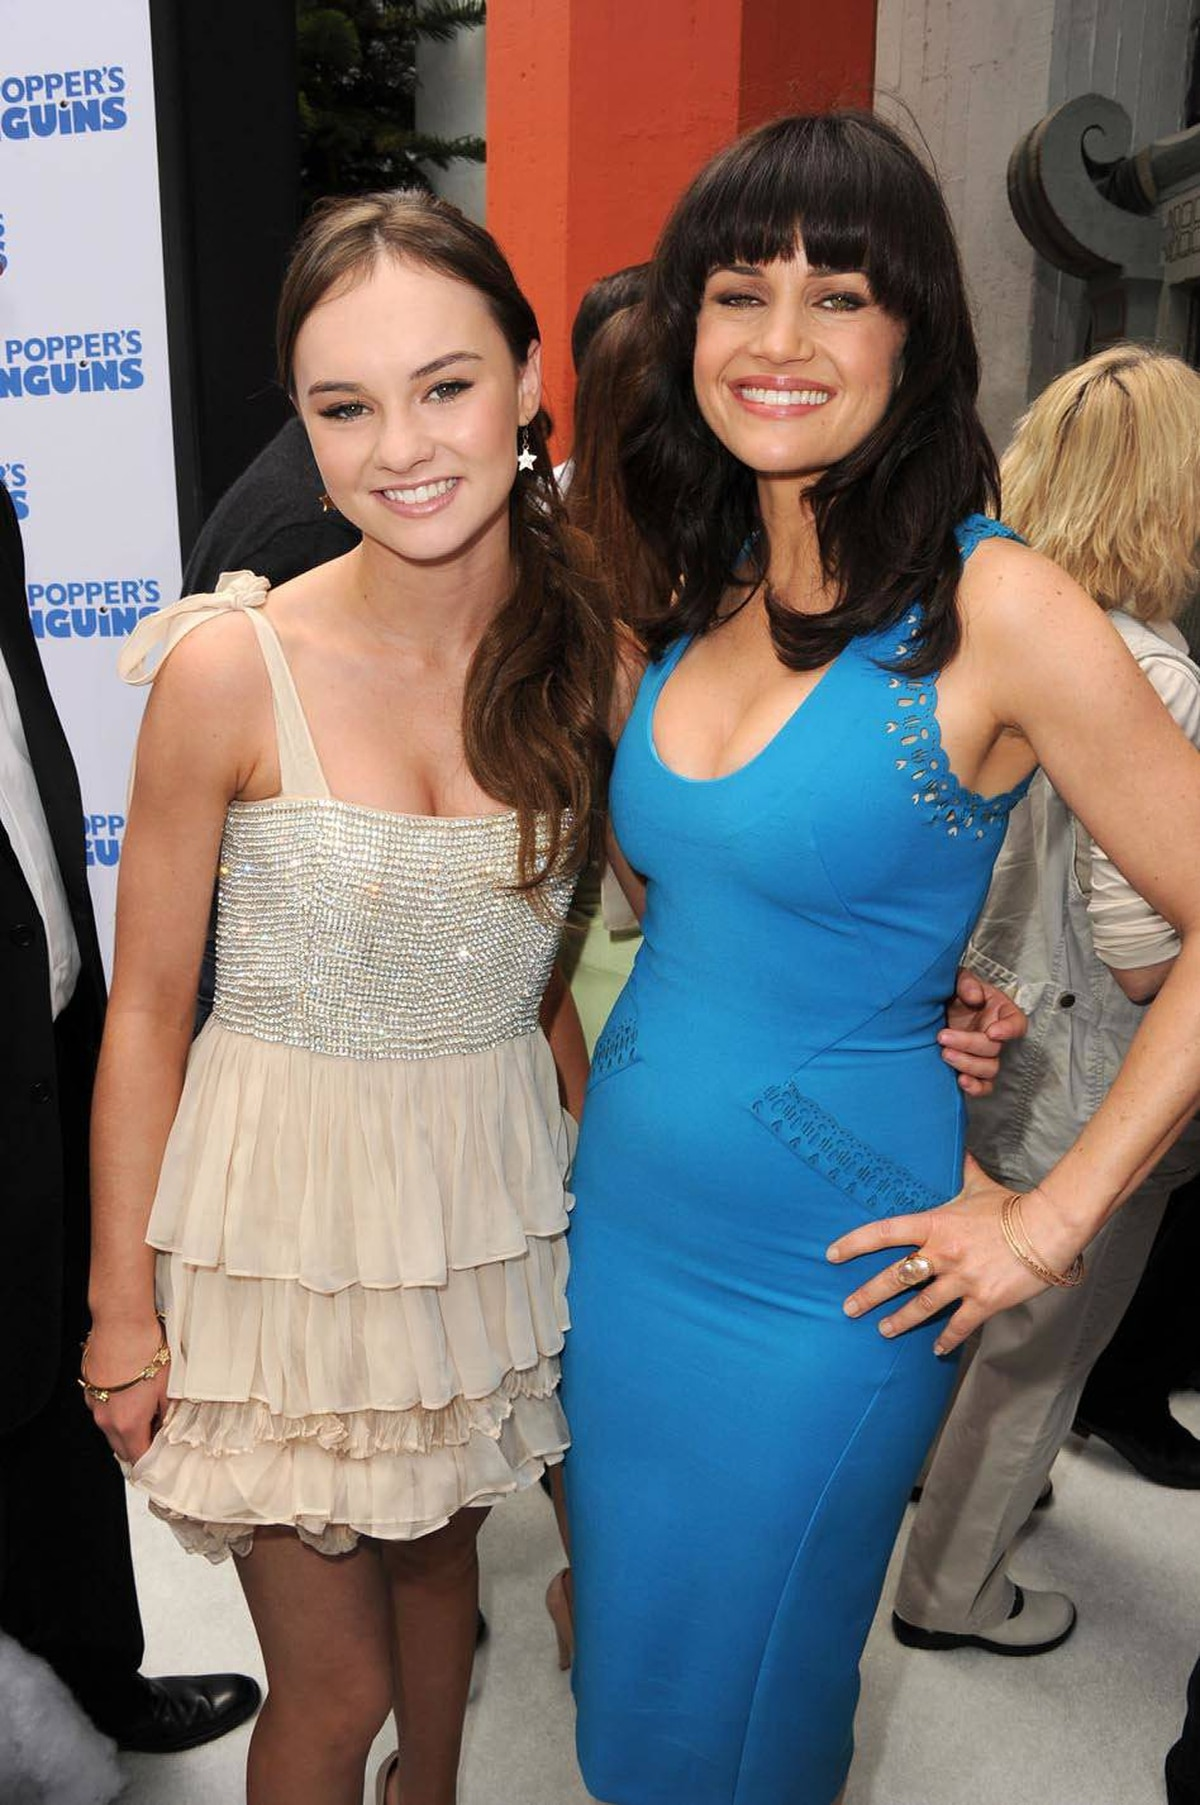 Actresses Madeline Carroll, left, and Carla Gugino arrive at the premiere of Mr. Popper's Penguins on June 12, 2011 in Hollywood.